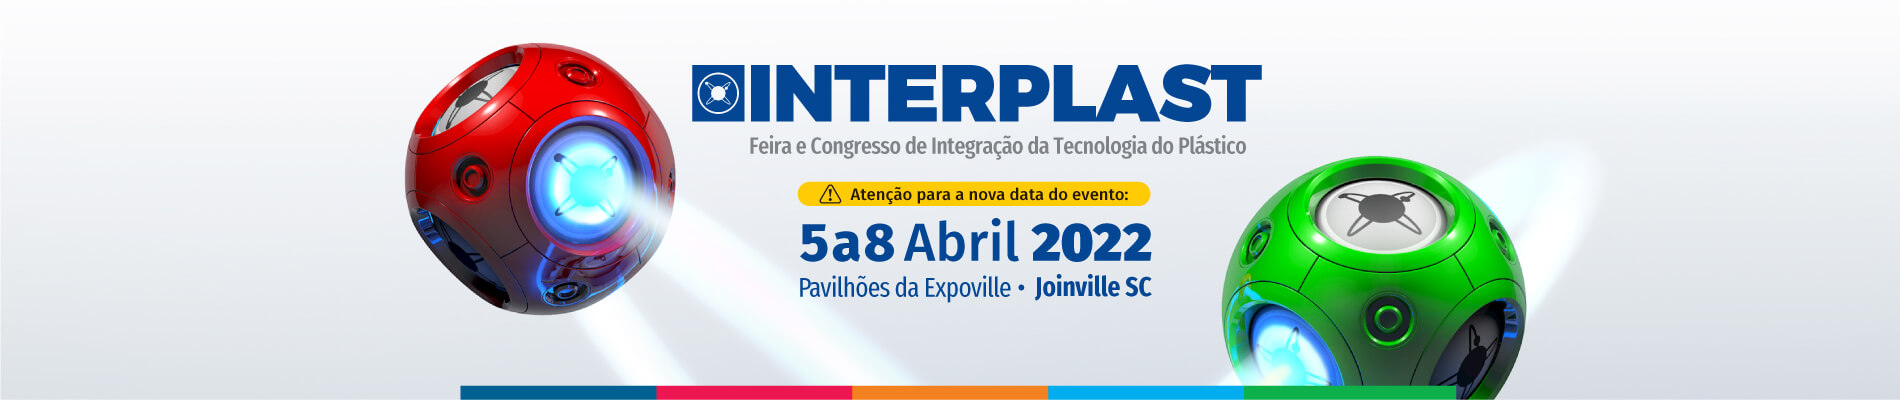 Inteprlast - Feira do Plastico